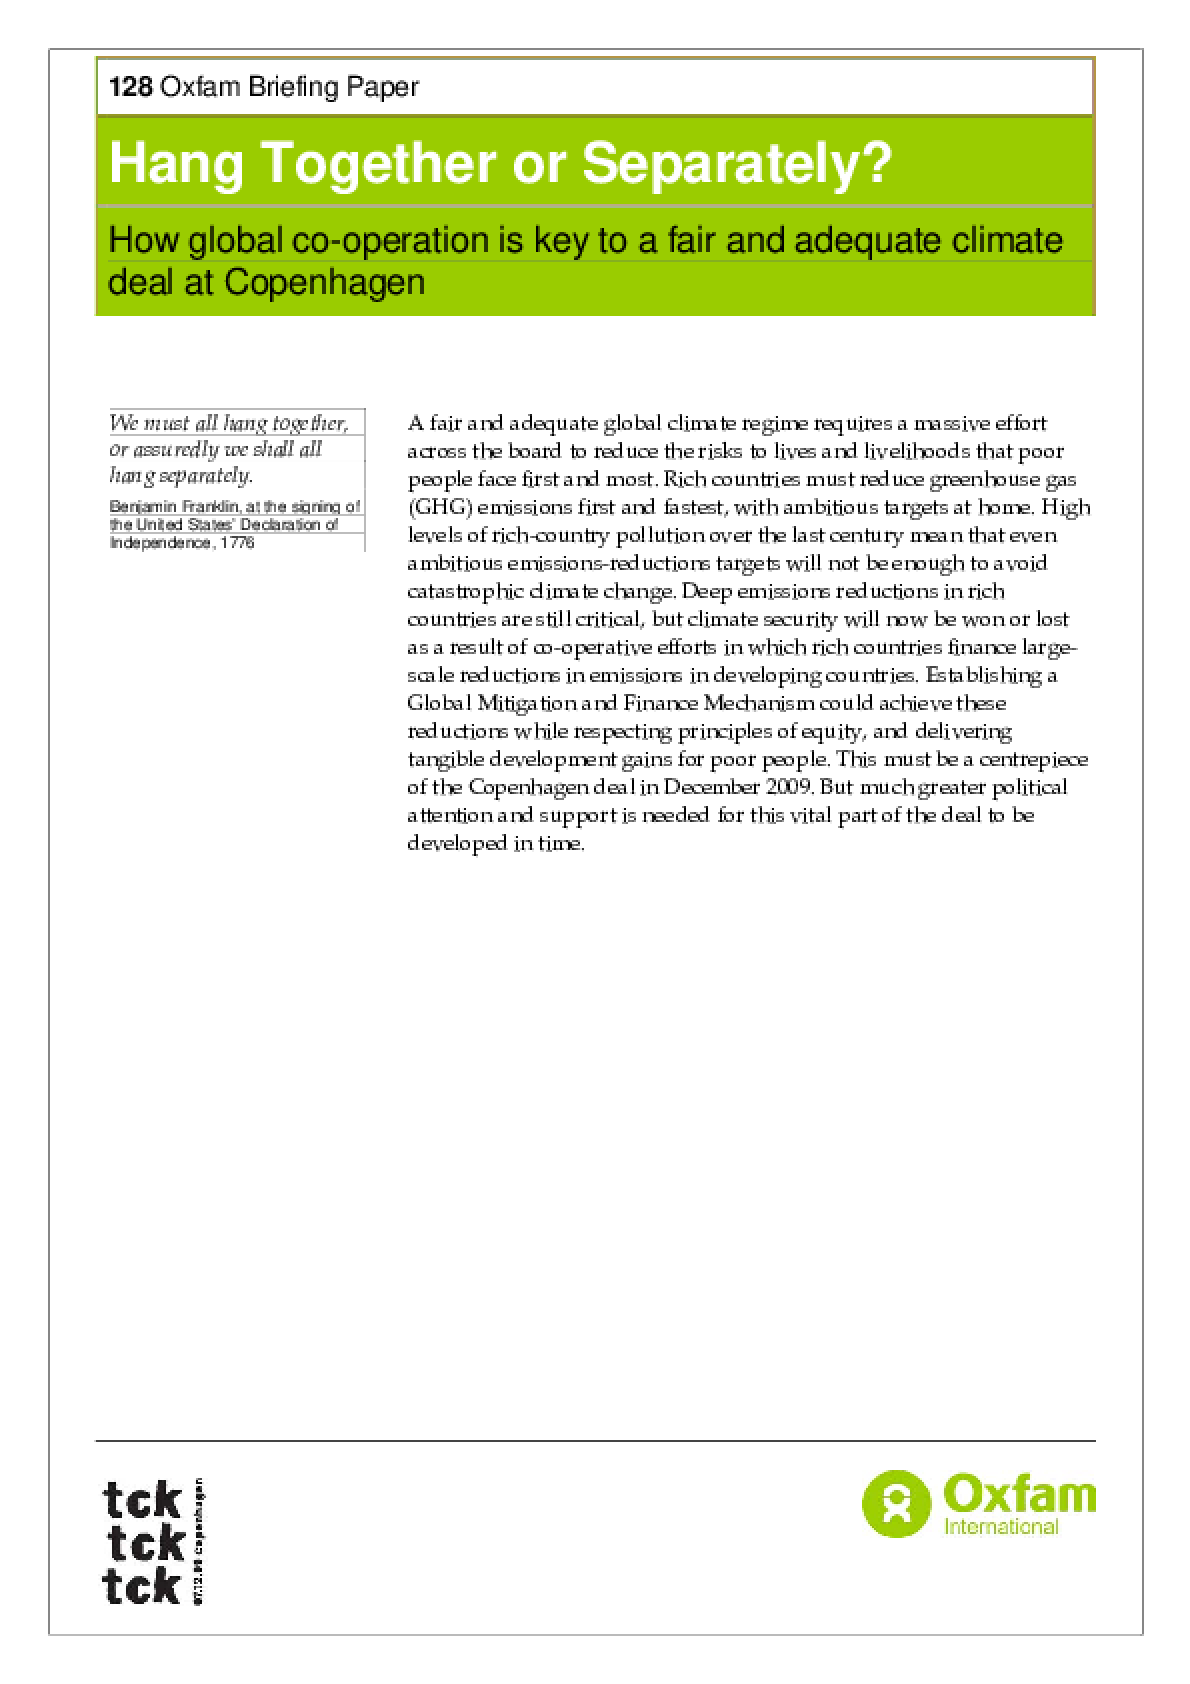 Hang Together or Separately? How global cooperation is key to a fair and adequate climate deal at Copenhagen